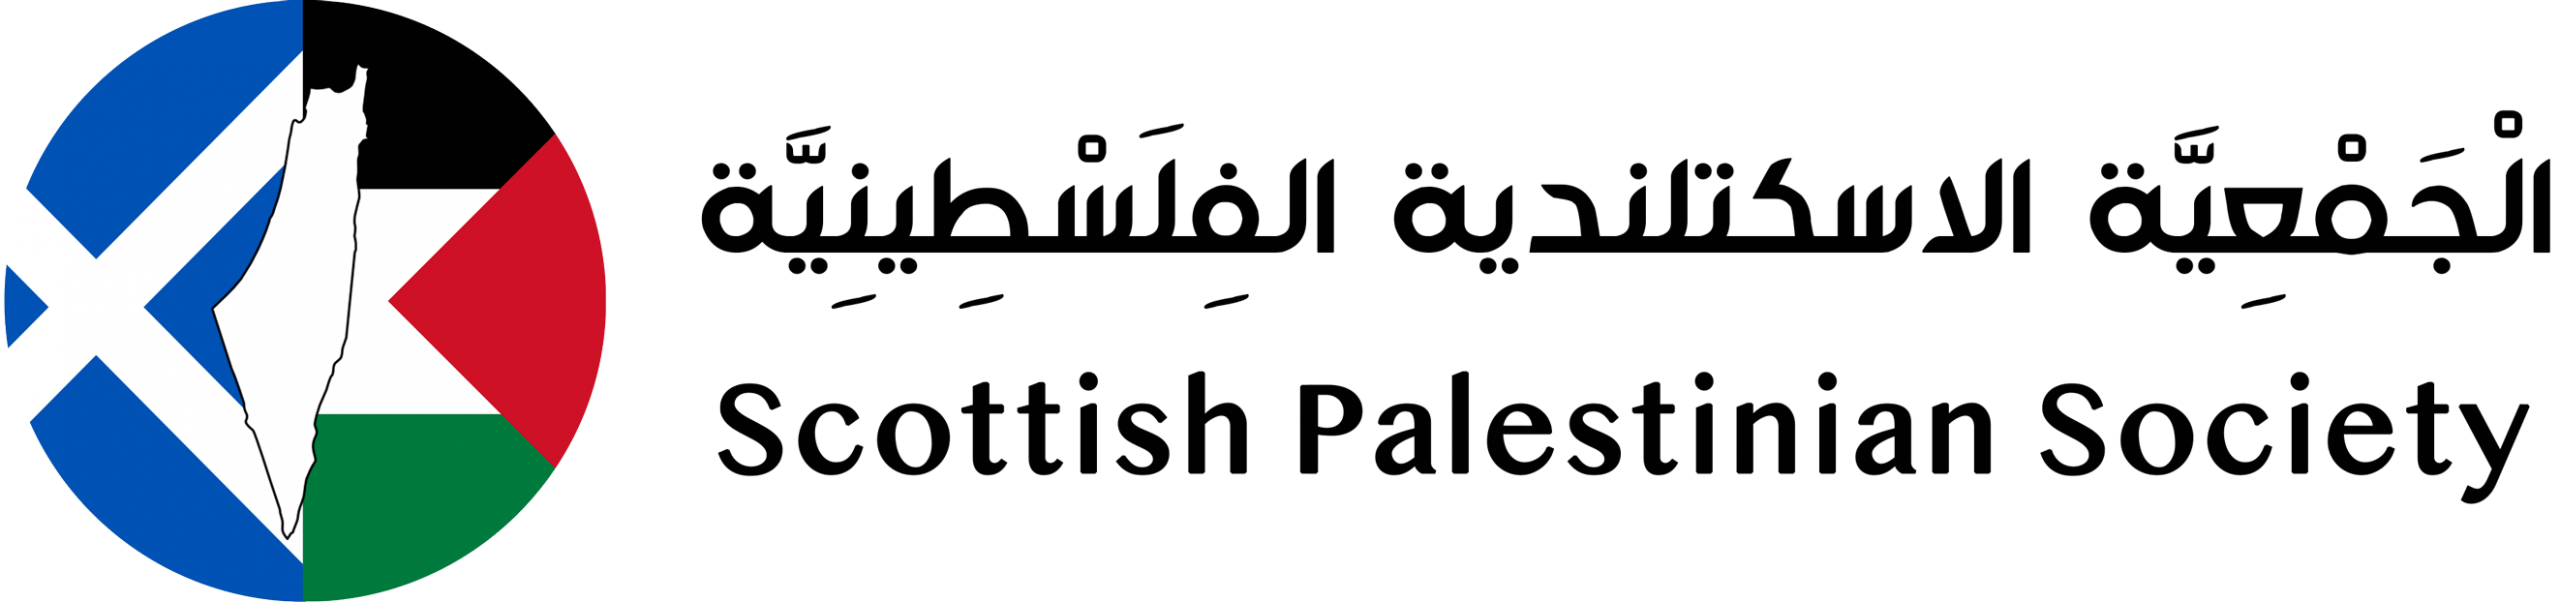 Scottish Palestinian Society